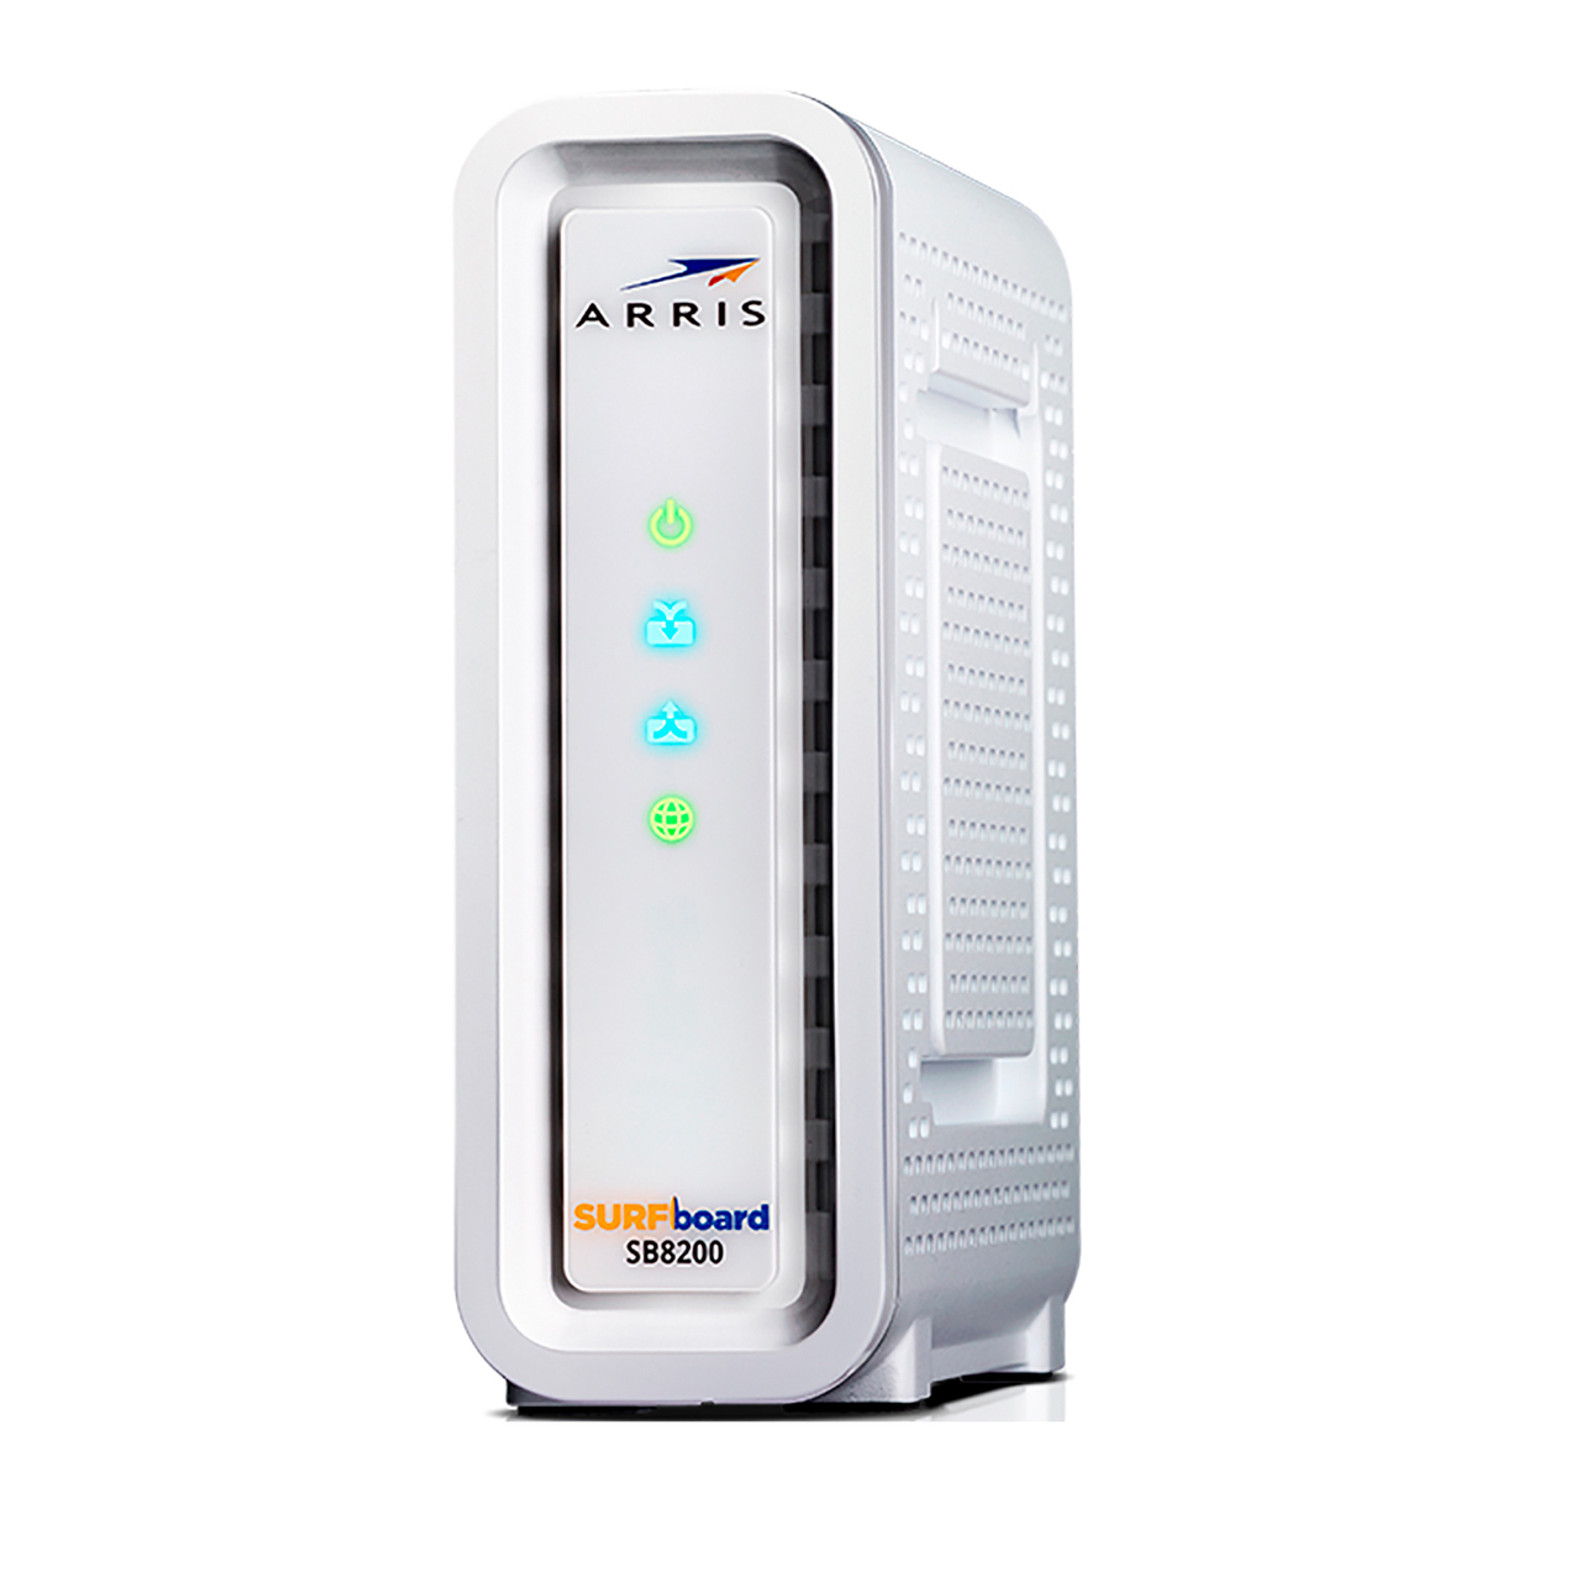 SB8200 SURFboard® Cable Modem